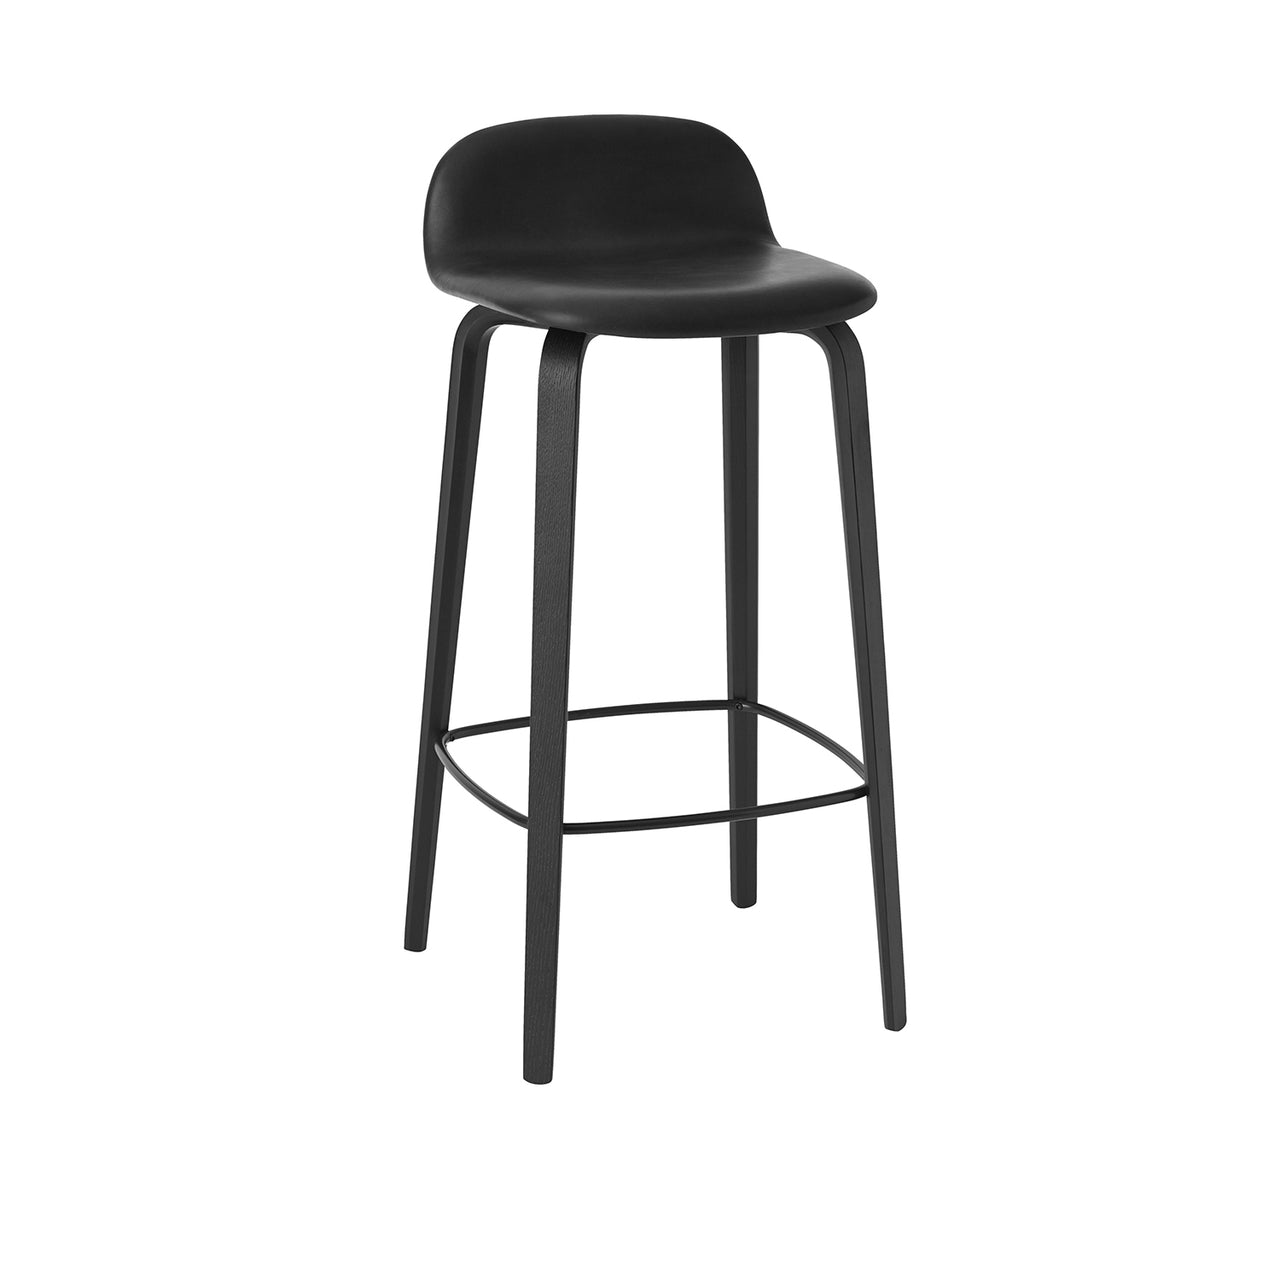 Visu Bar Stool: Upholstered